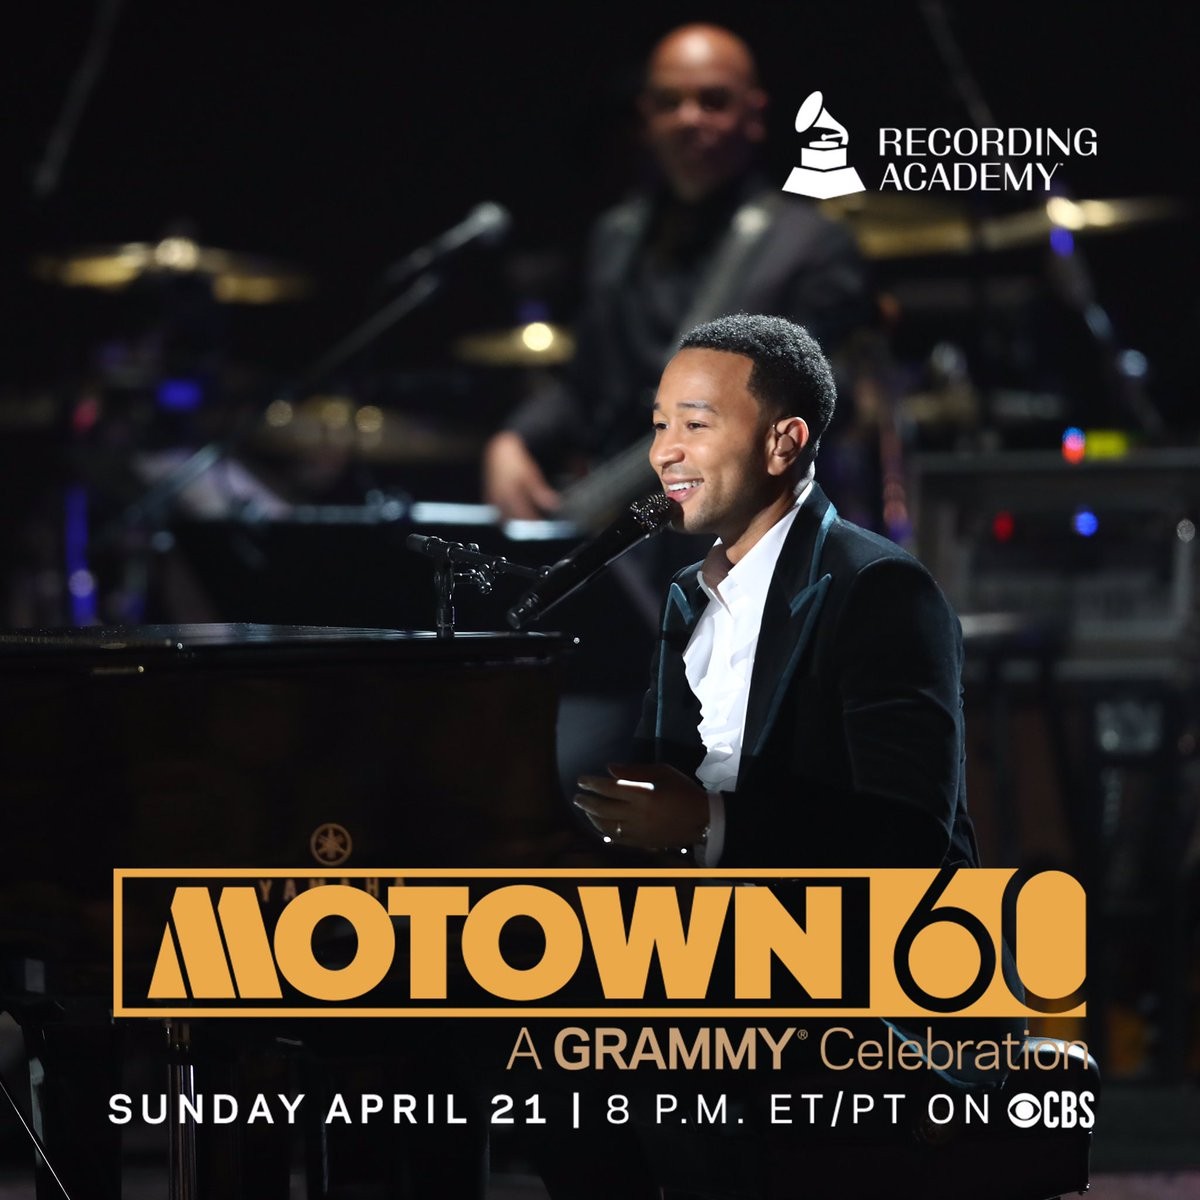 I&#39;ll be performing at MOTOWN 60: A GRAMMY Celebration, so make sure you&#39;re tuned in tonight at 8e/7c on @CBS!<br>http://pic.twitter.com/18fH8NYugO